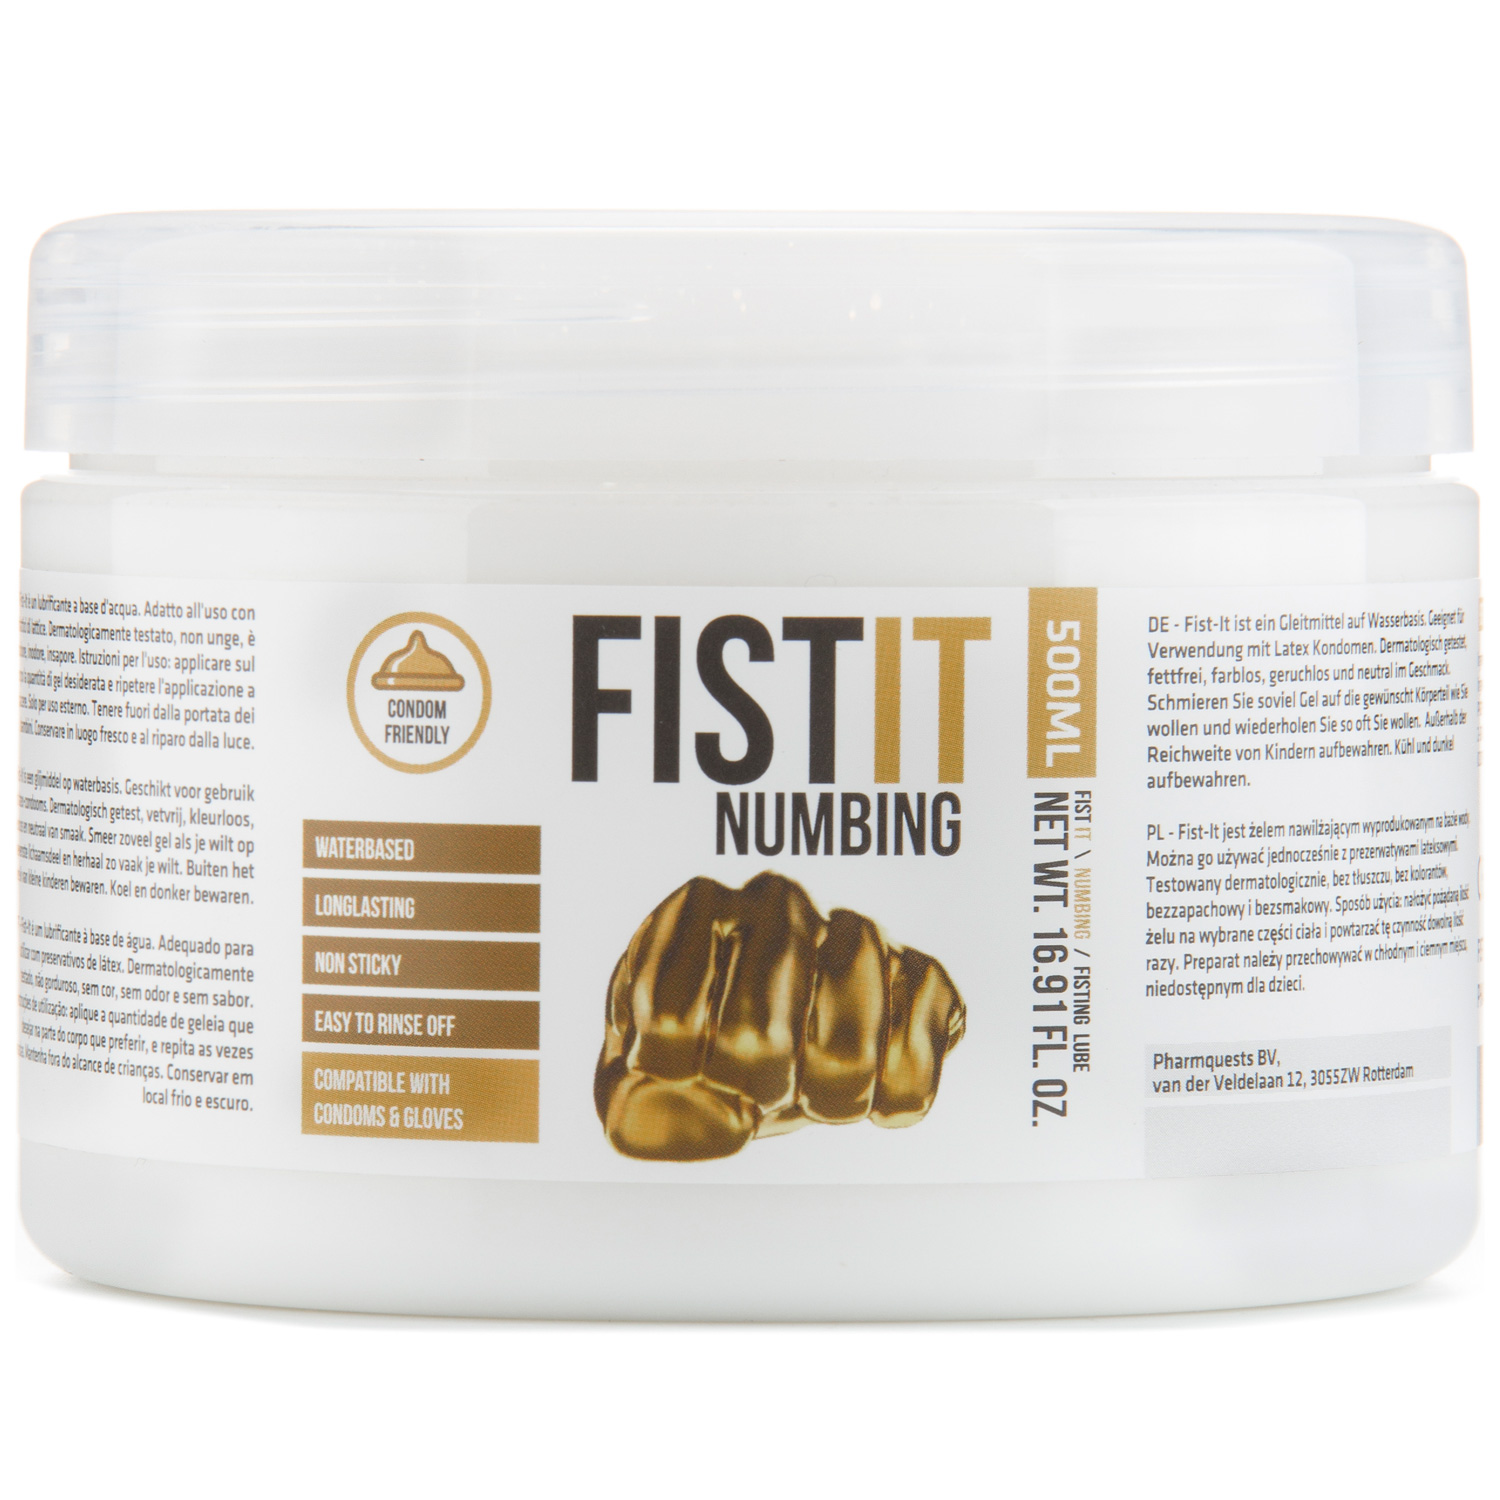 Fist It Numbing Bedøvende Glidecreme 500 ml